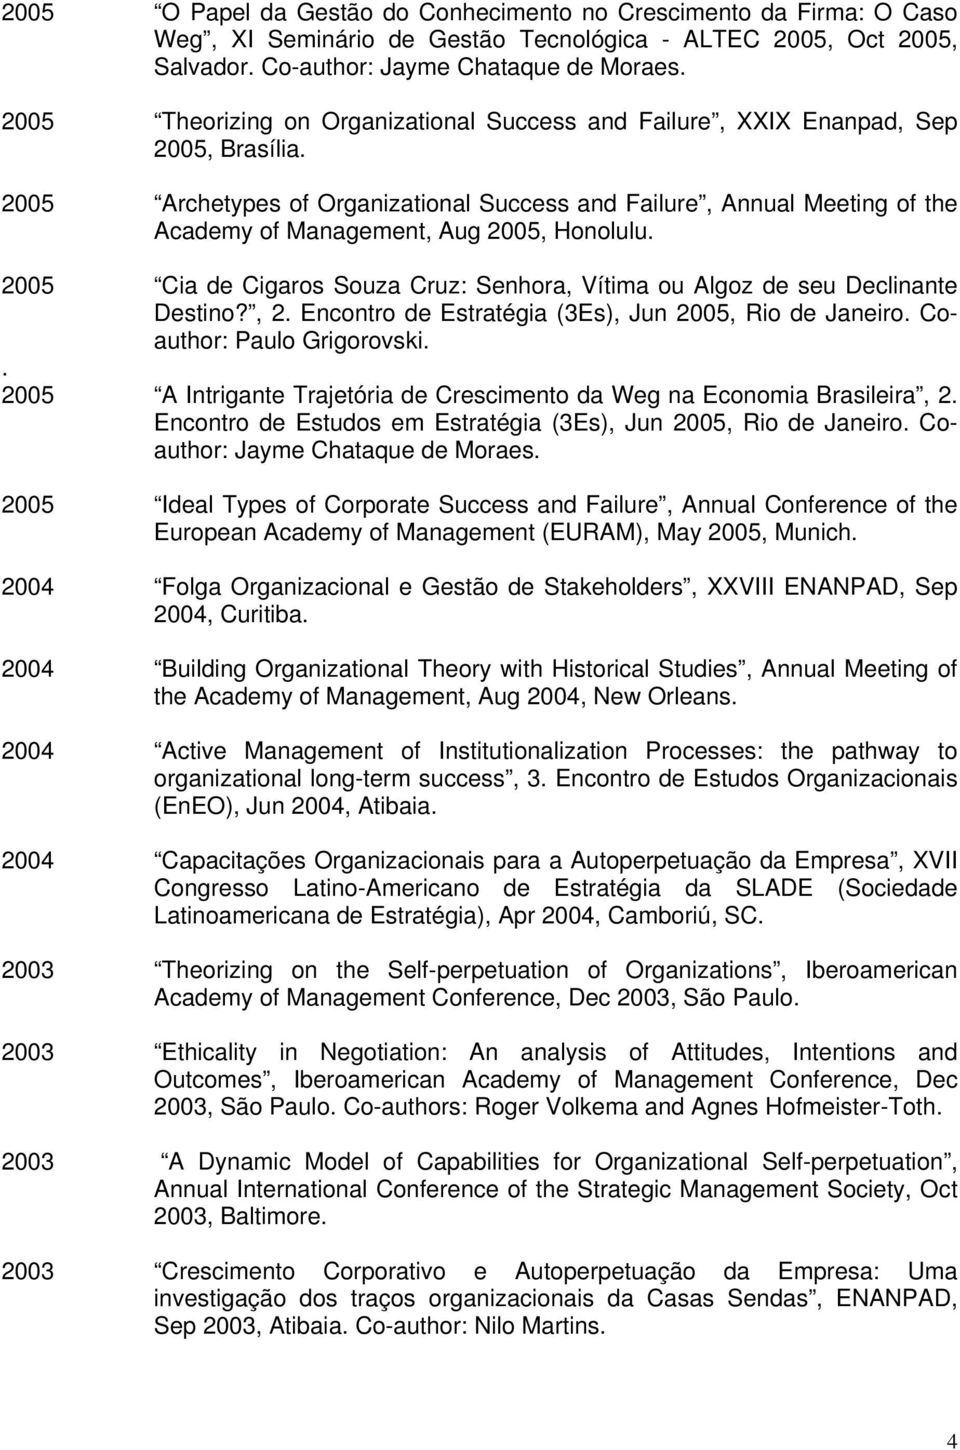 2005 Archetypes of Organizational Success and Failure, Annual Meeting of the Academy of Management, Aug 2005, Honolulu.